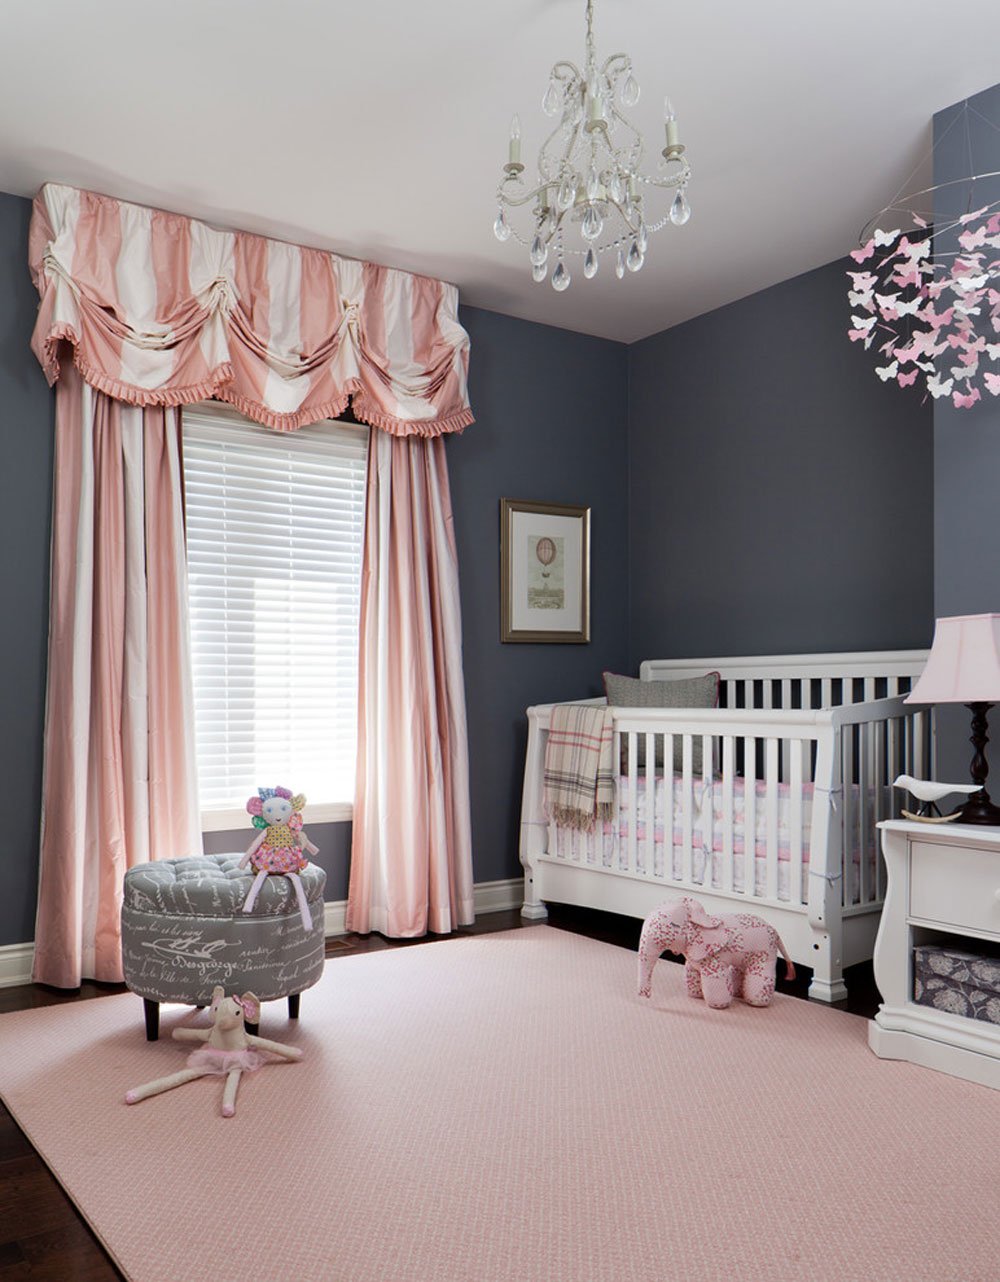 41 Baby Nursery Color Schemes For Your S Room